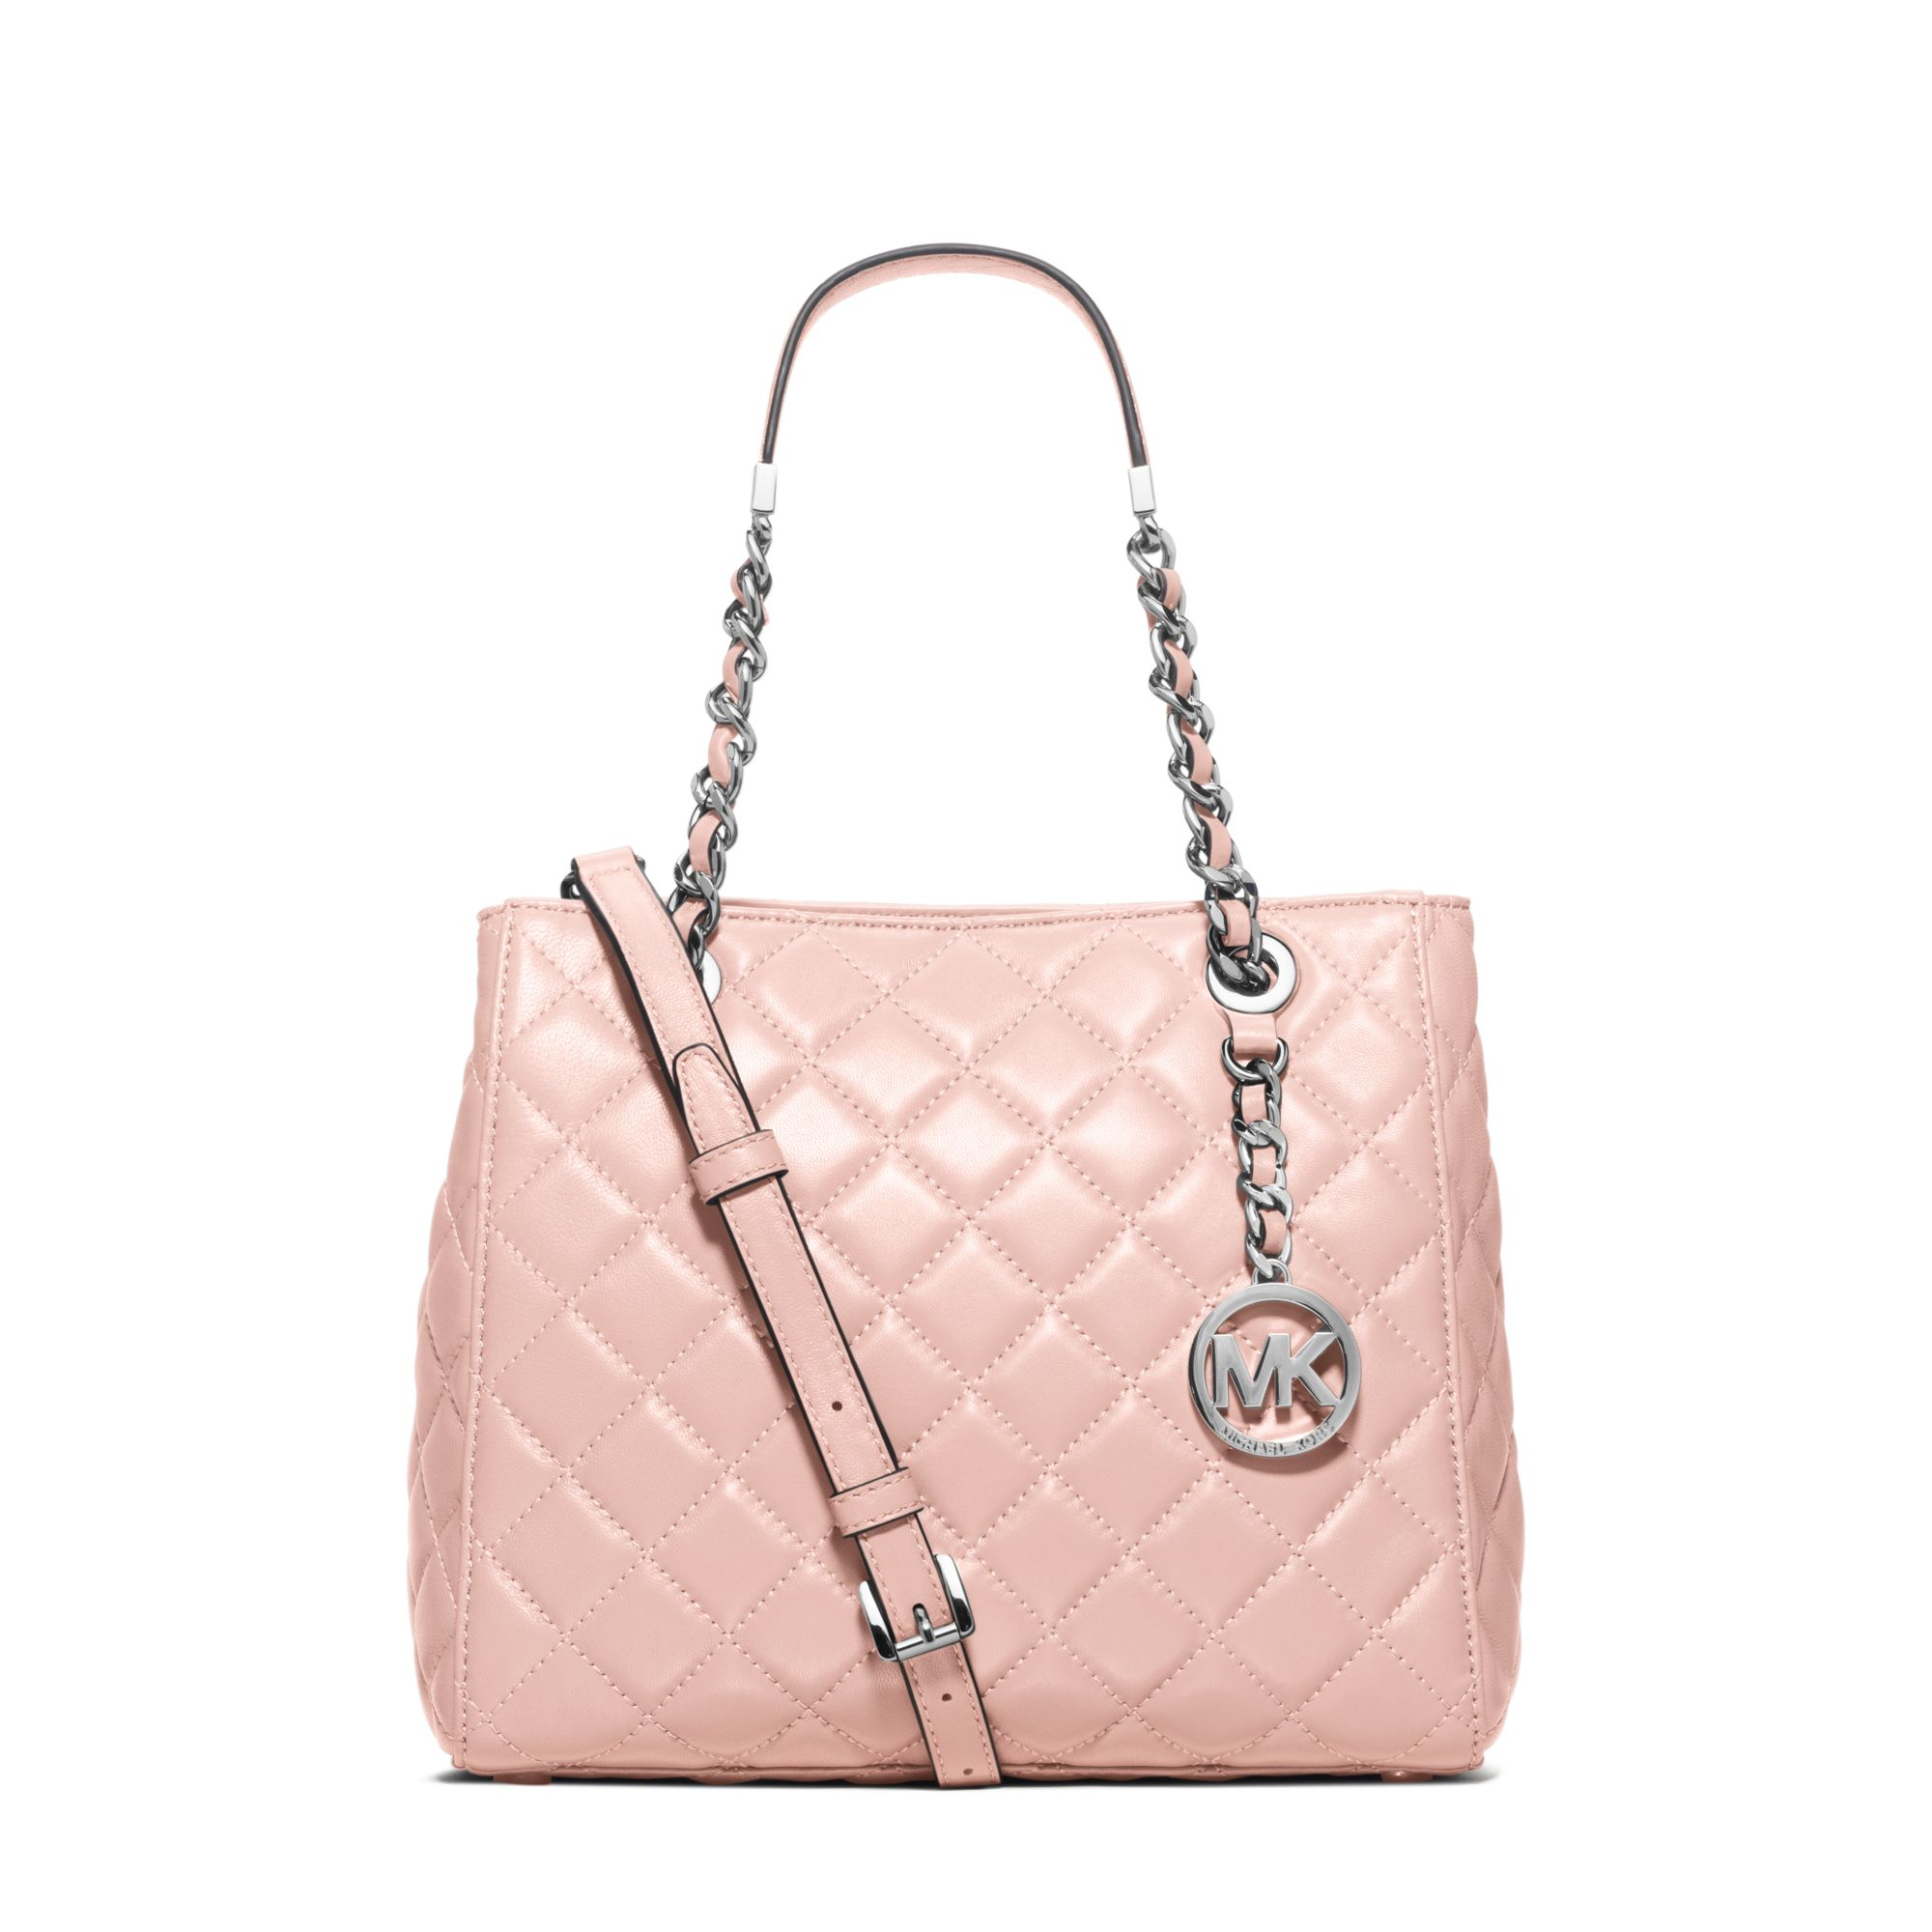 Michael Kors Susannah Small Leather Tote In Pink Lyst